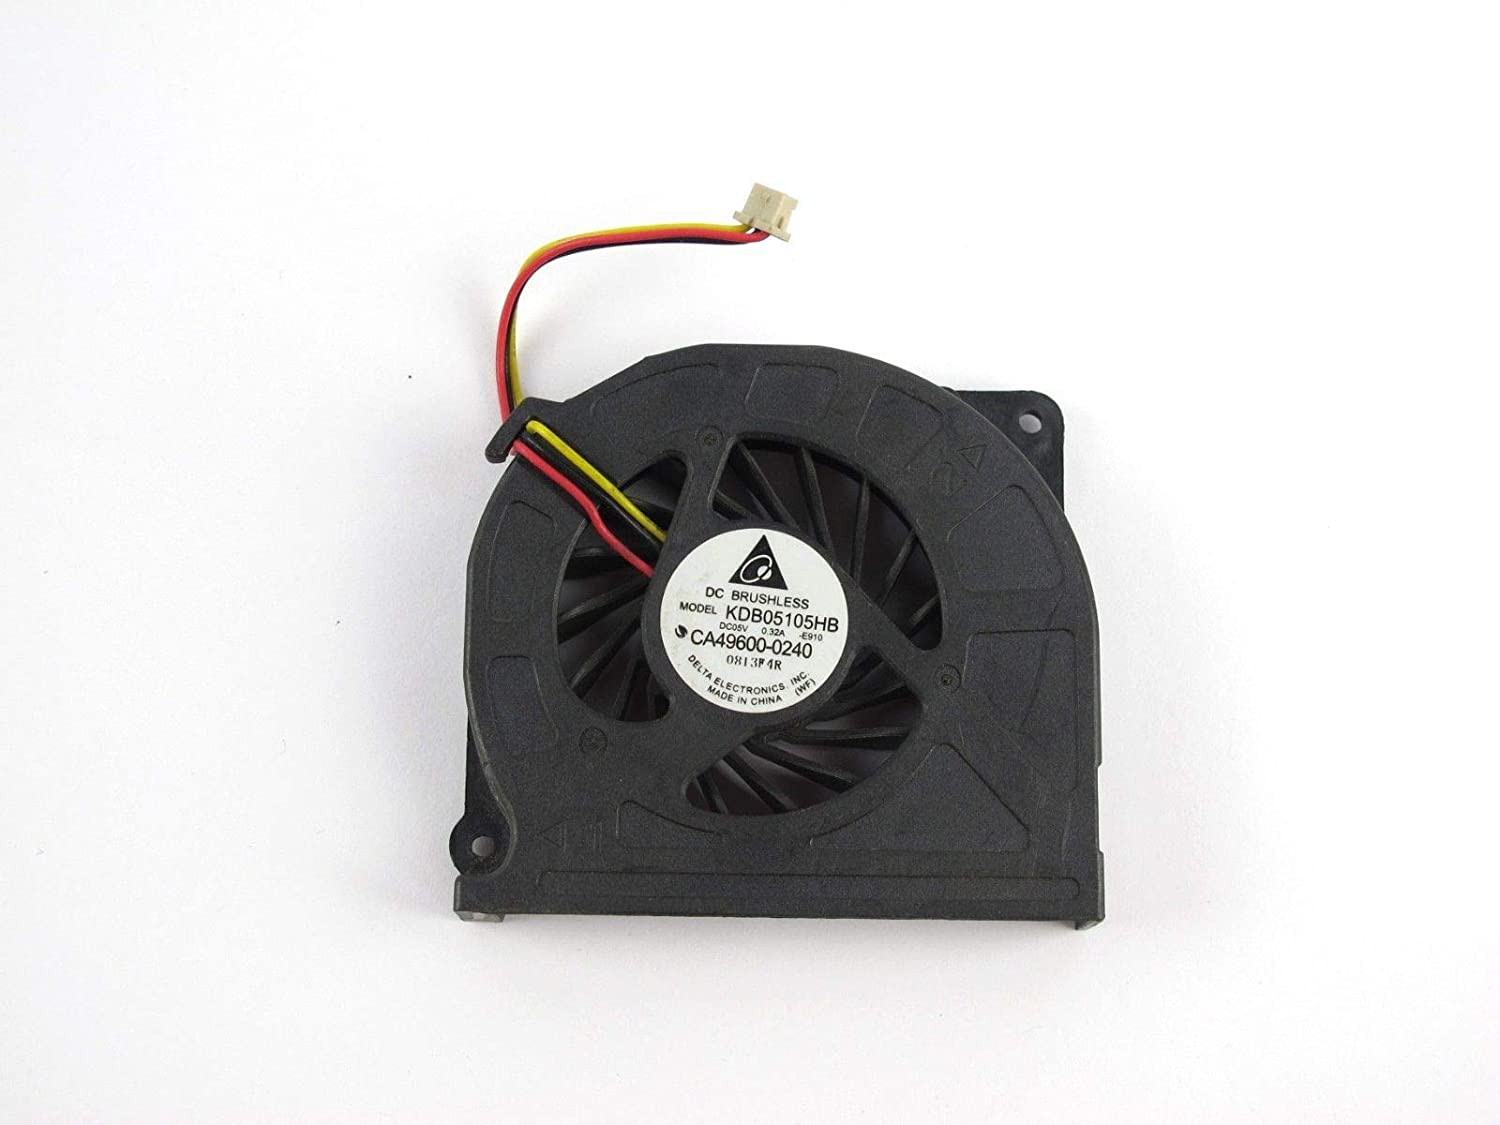 CPU Cooling Fan Replacement fit for Fujitsu Lifebook E780 E751 Th700 T730 T900